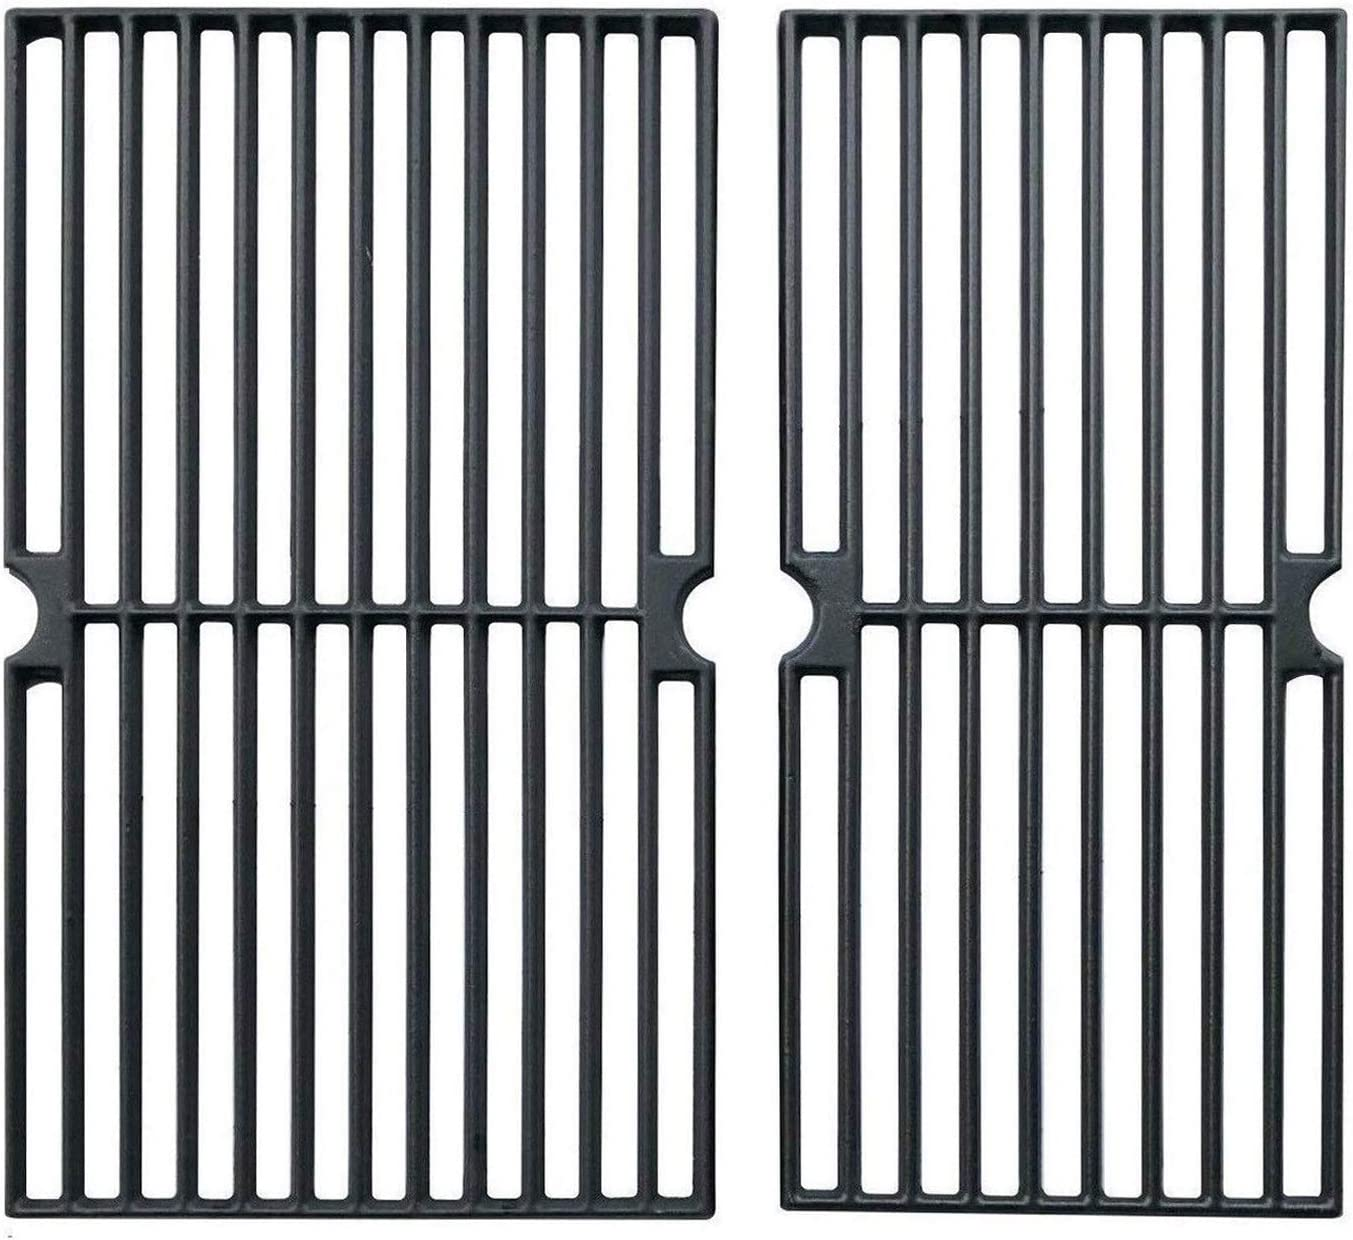 Hongso Cast Iron Cooking Grill for Grates Replacement Max 49% OFF Parts mart Brin